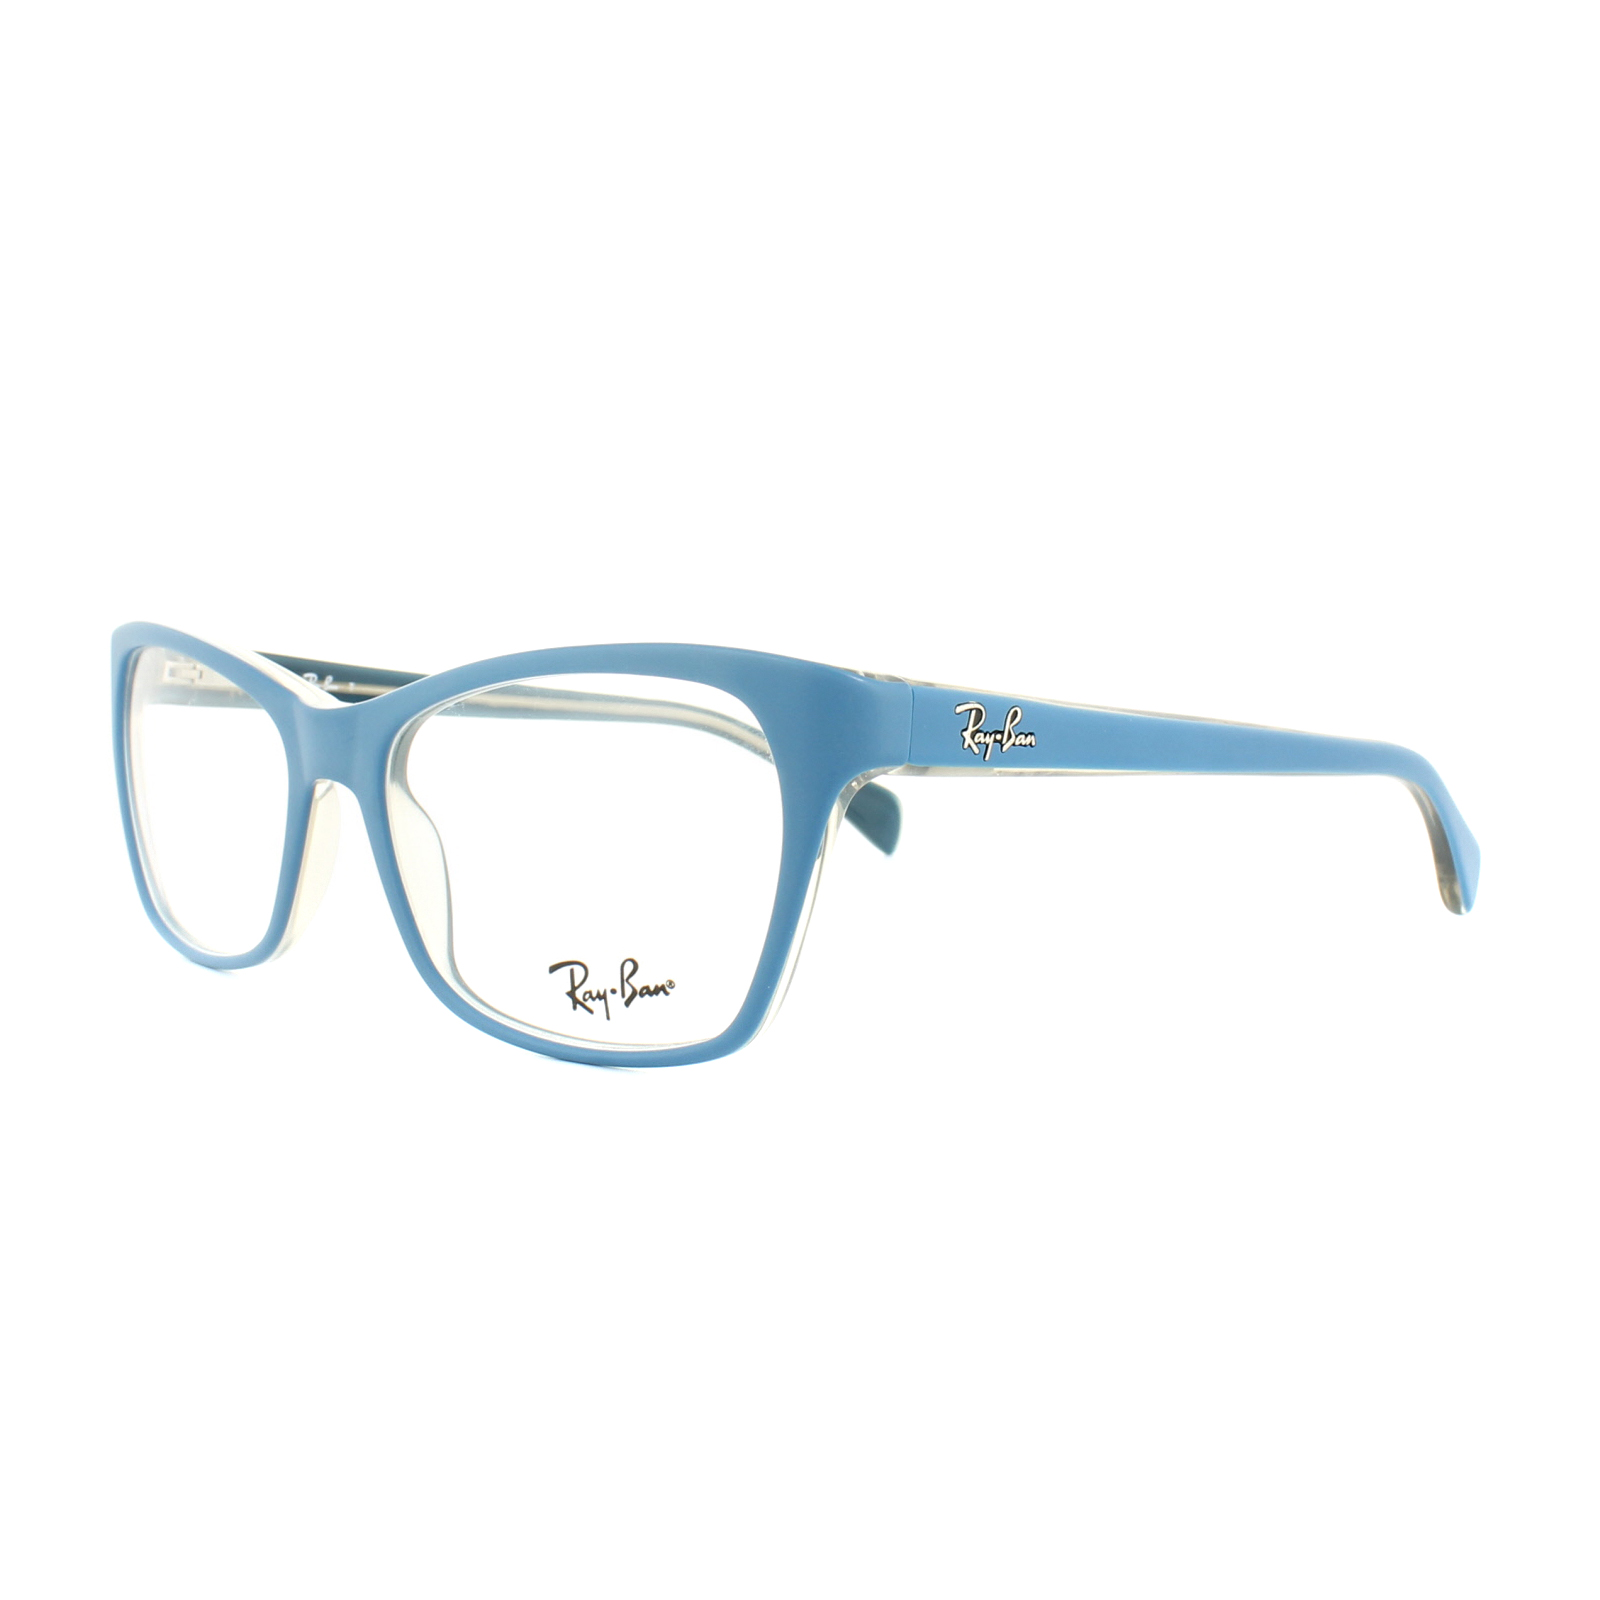 9ff6a678c23 Cheap Ray-Ban RX 5298 Glasses Frames - Discounted Sunglasses